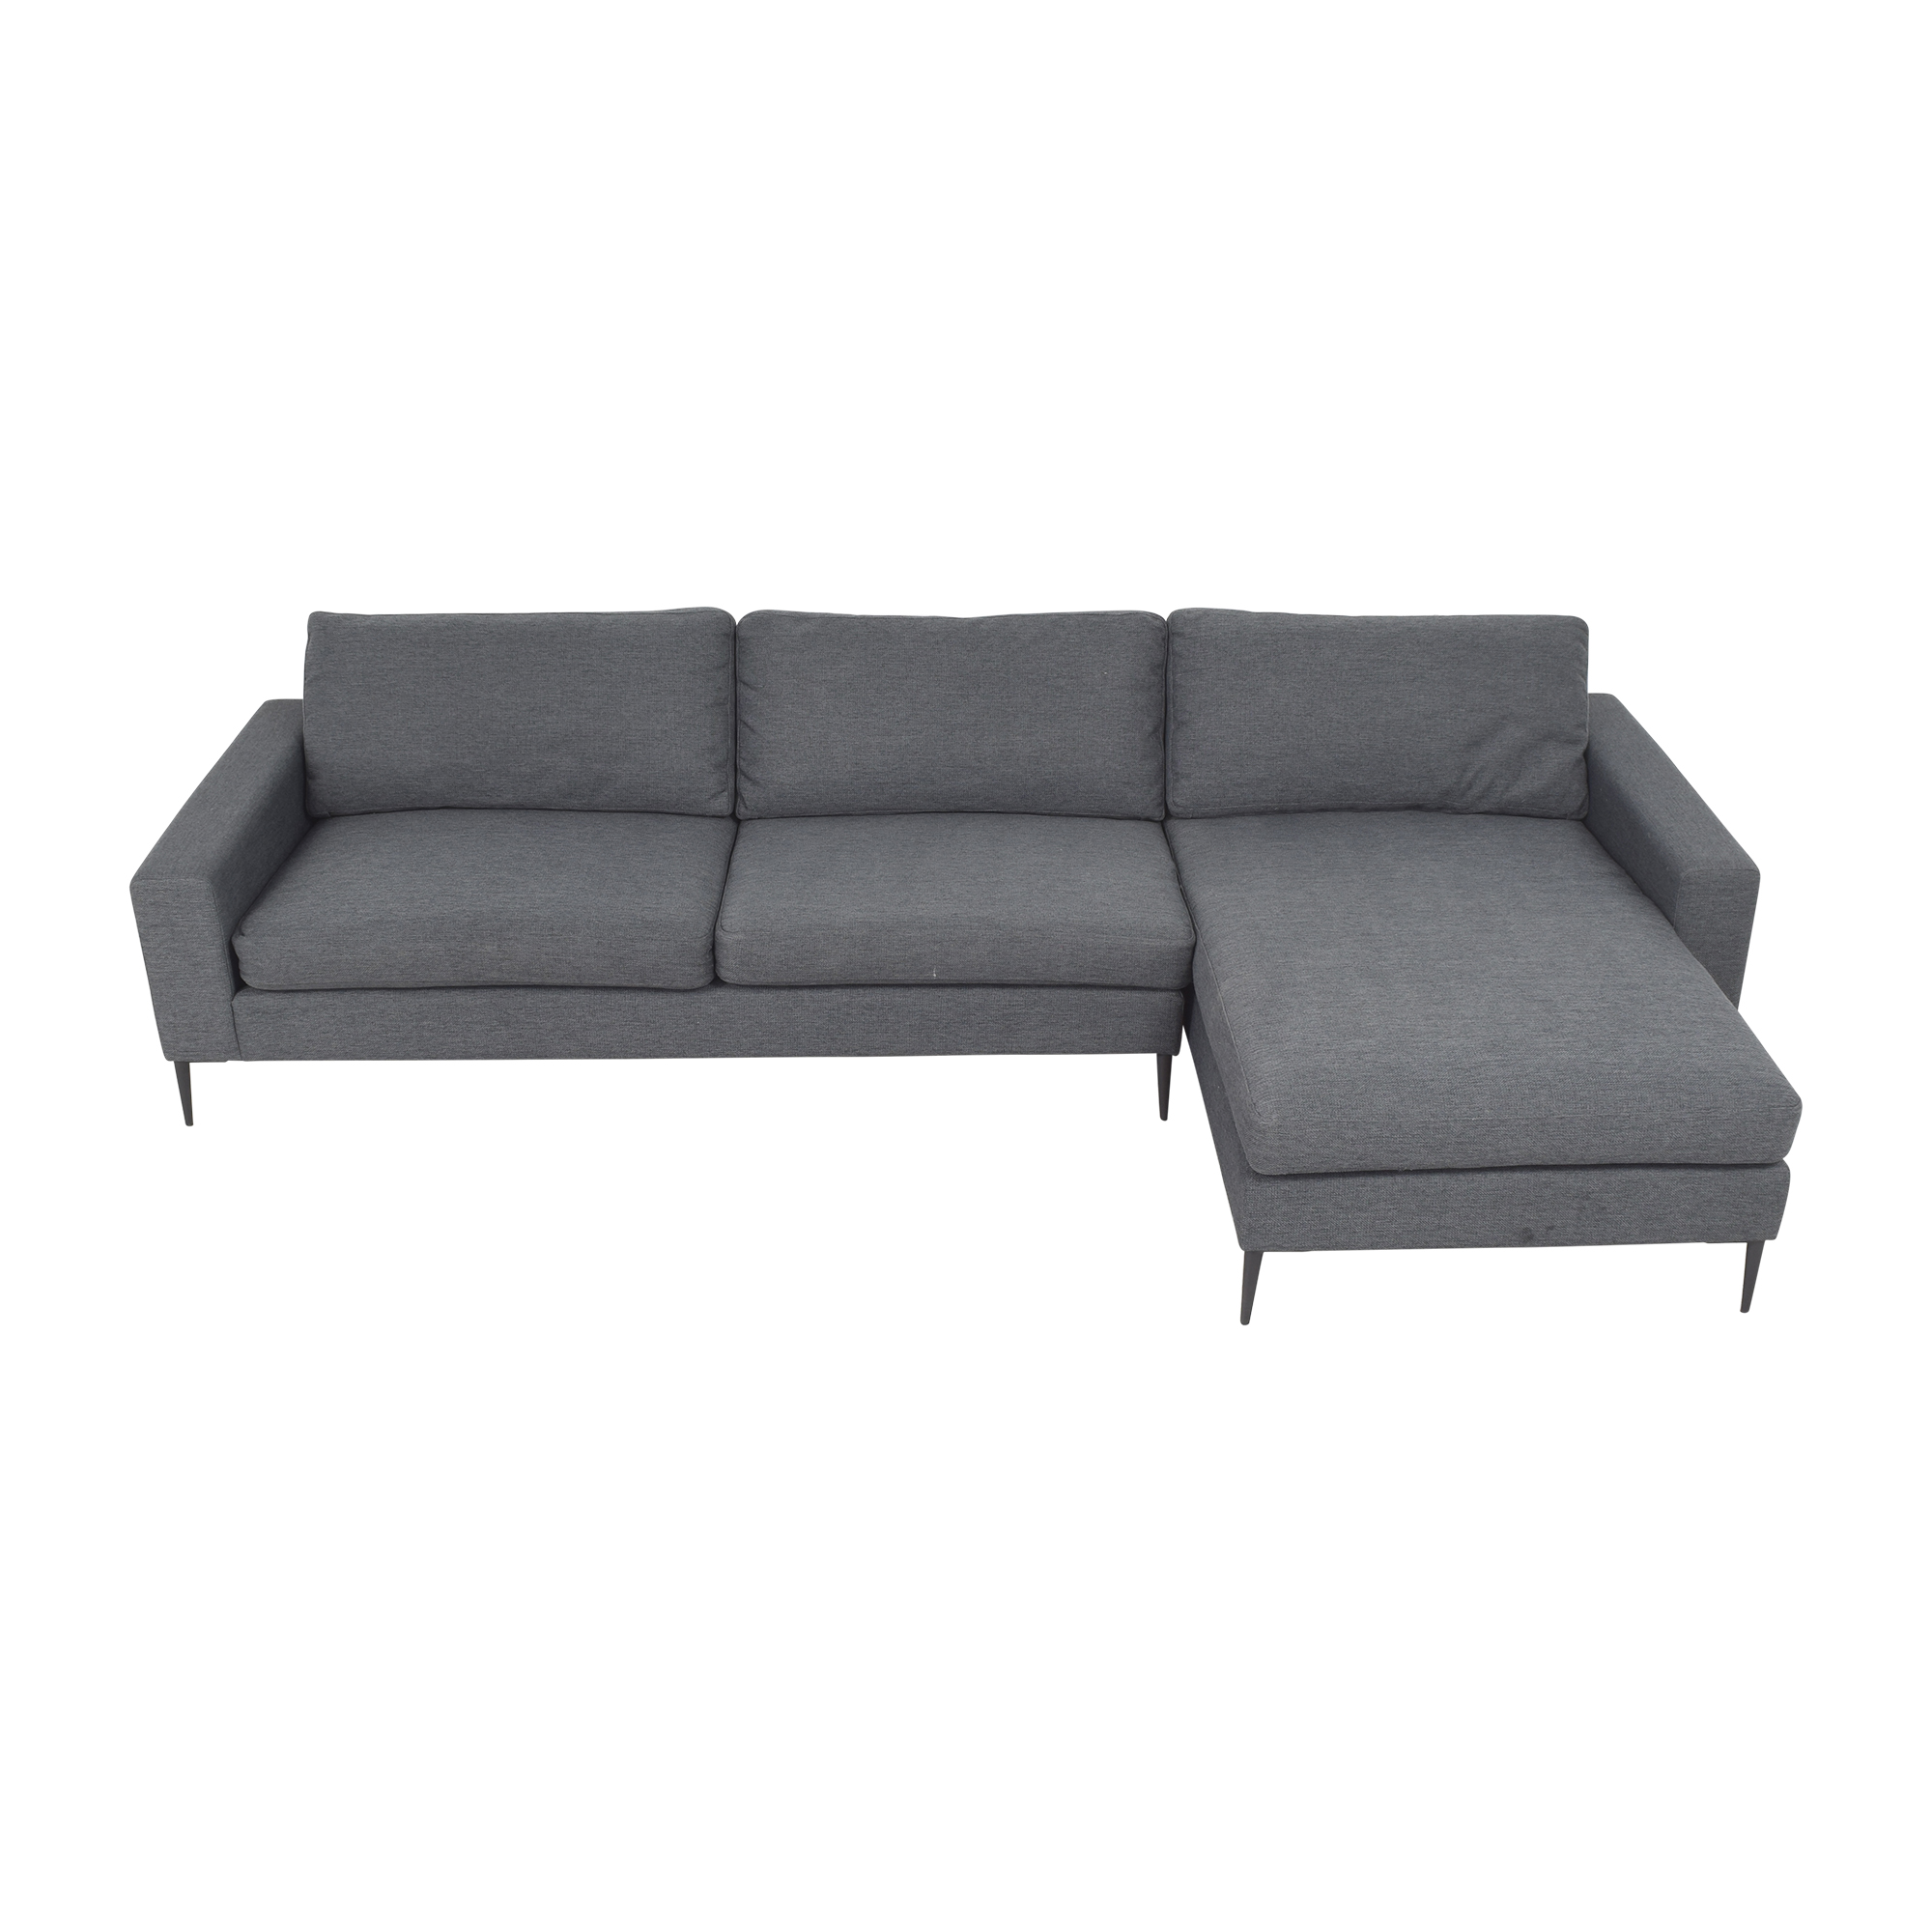 Article Article Nova Right Sectional Sofa coupon